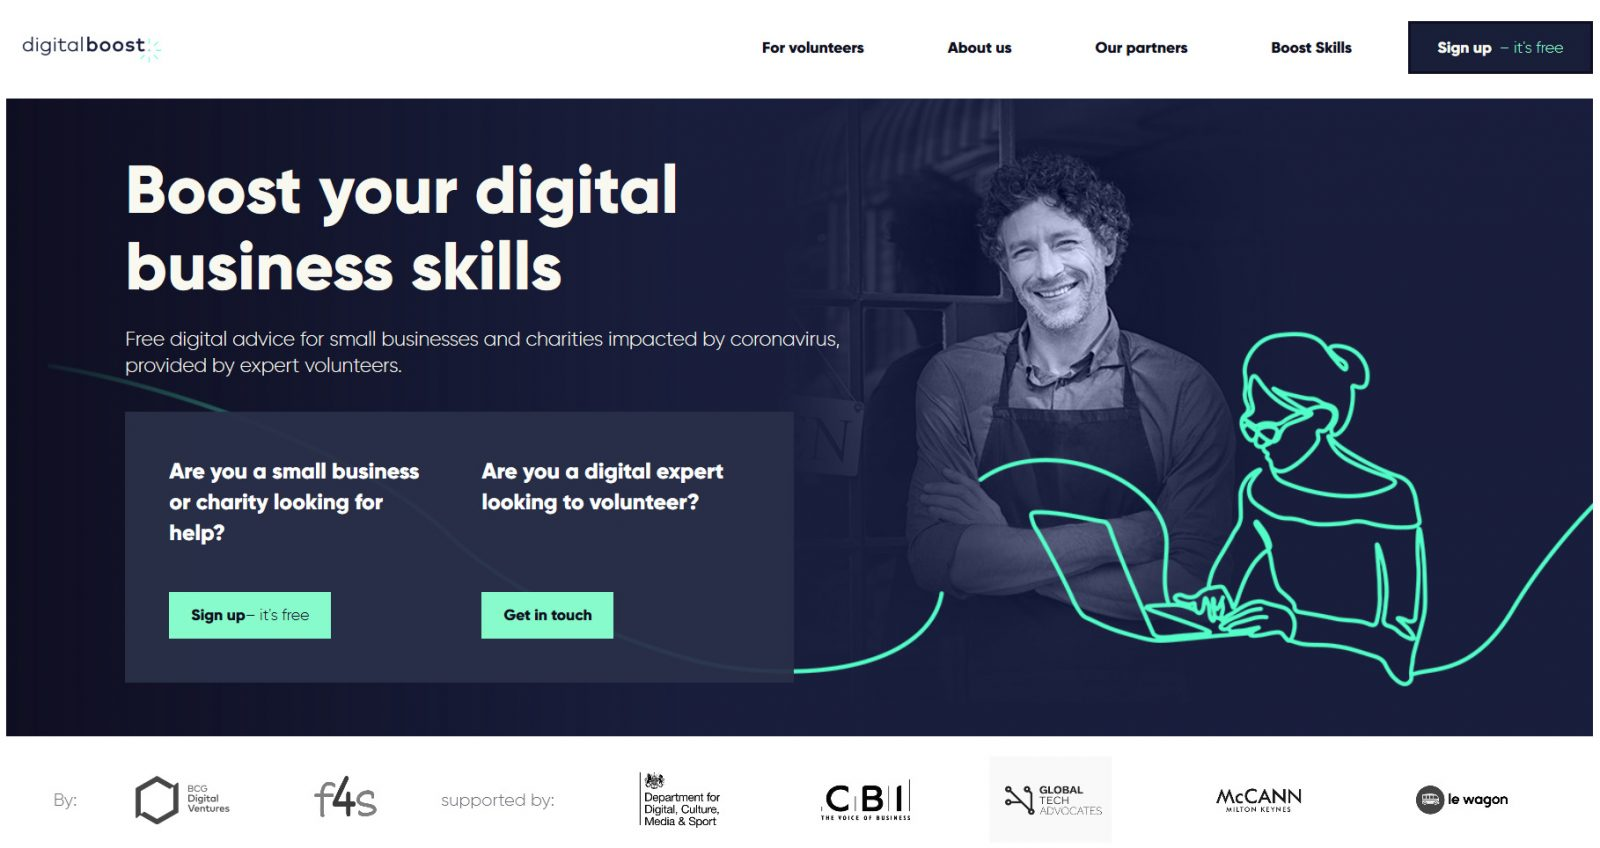 Heart of the south west LEP - Digital Skills Partnership Newsletter - September 2020